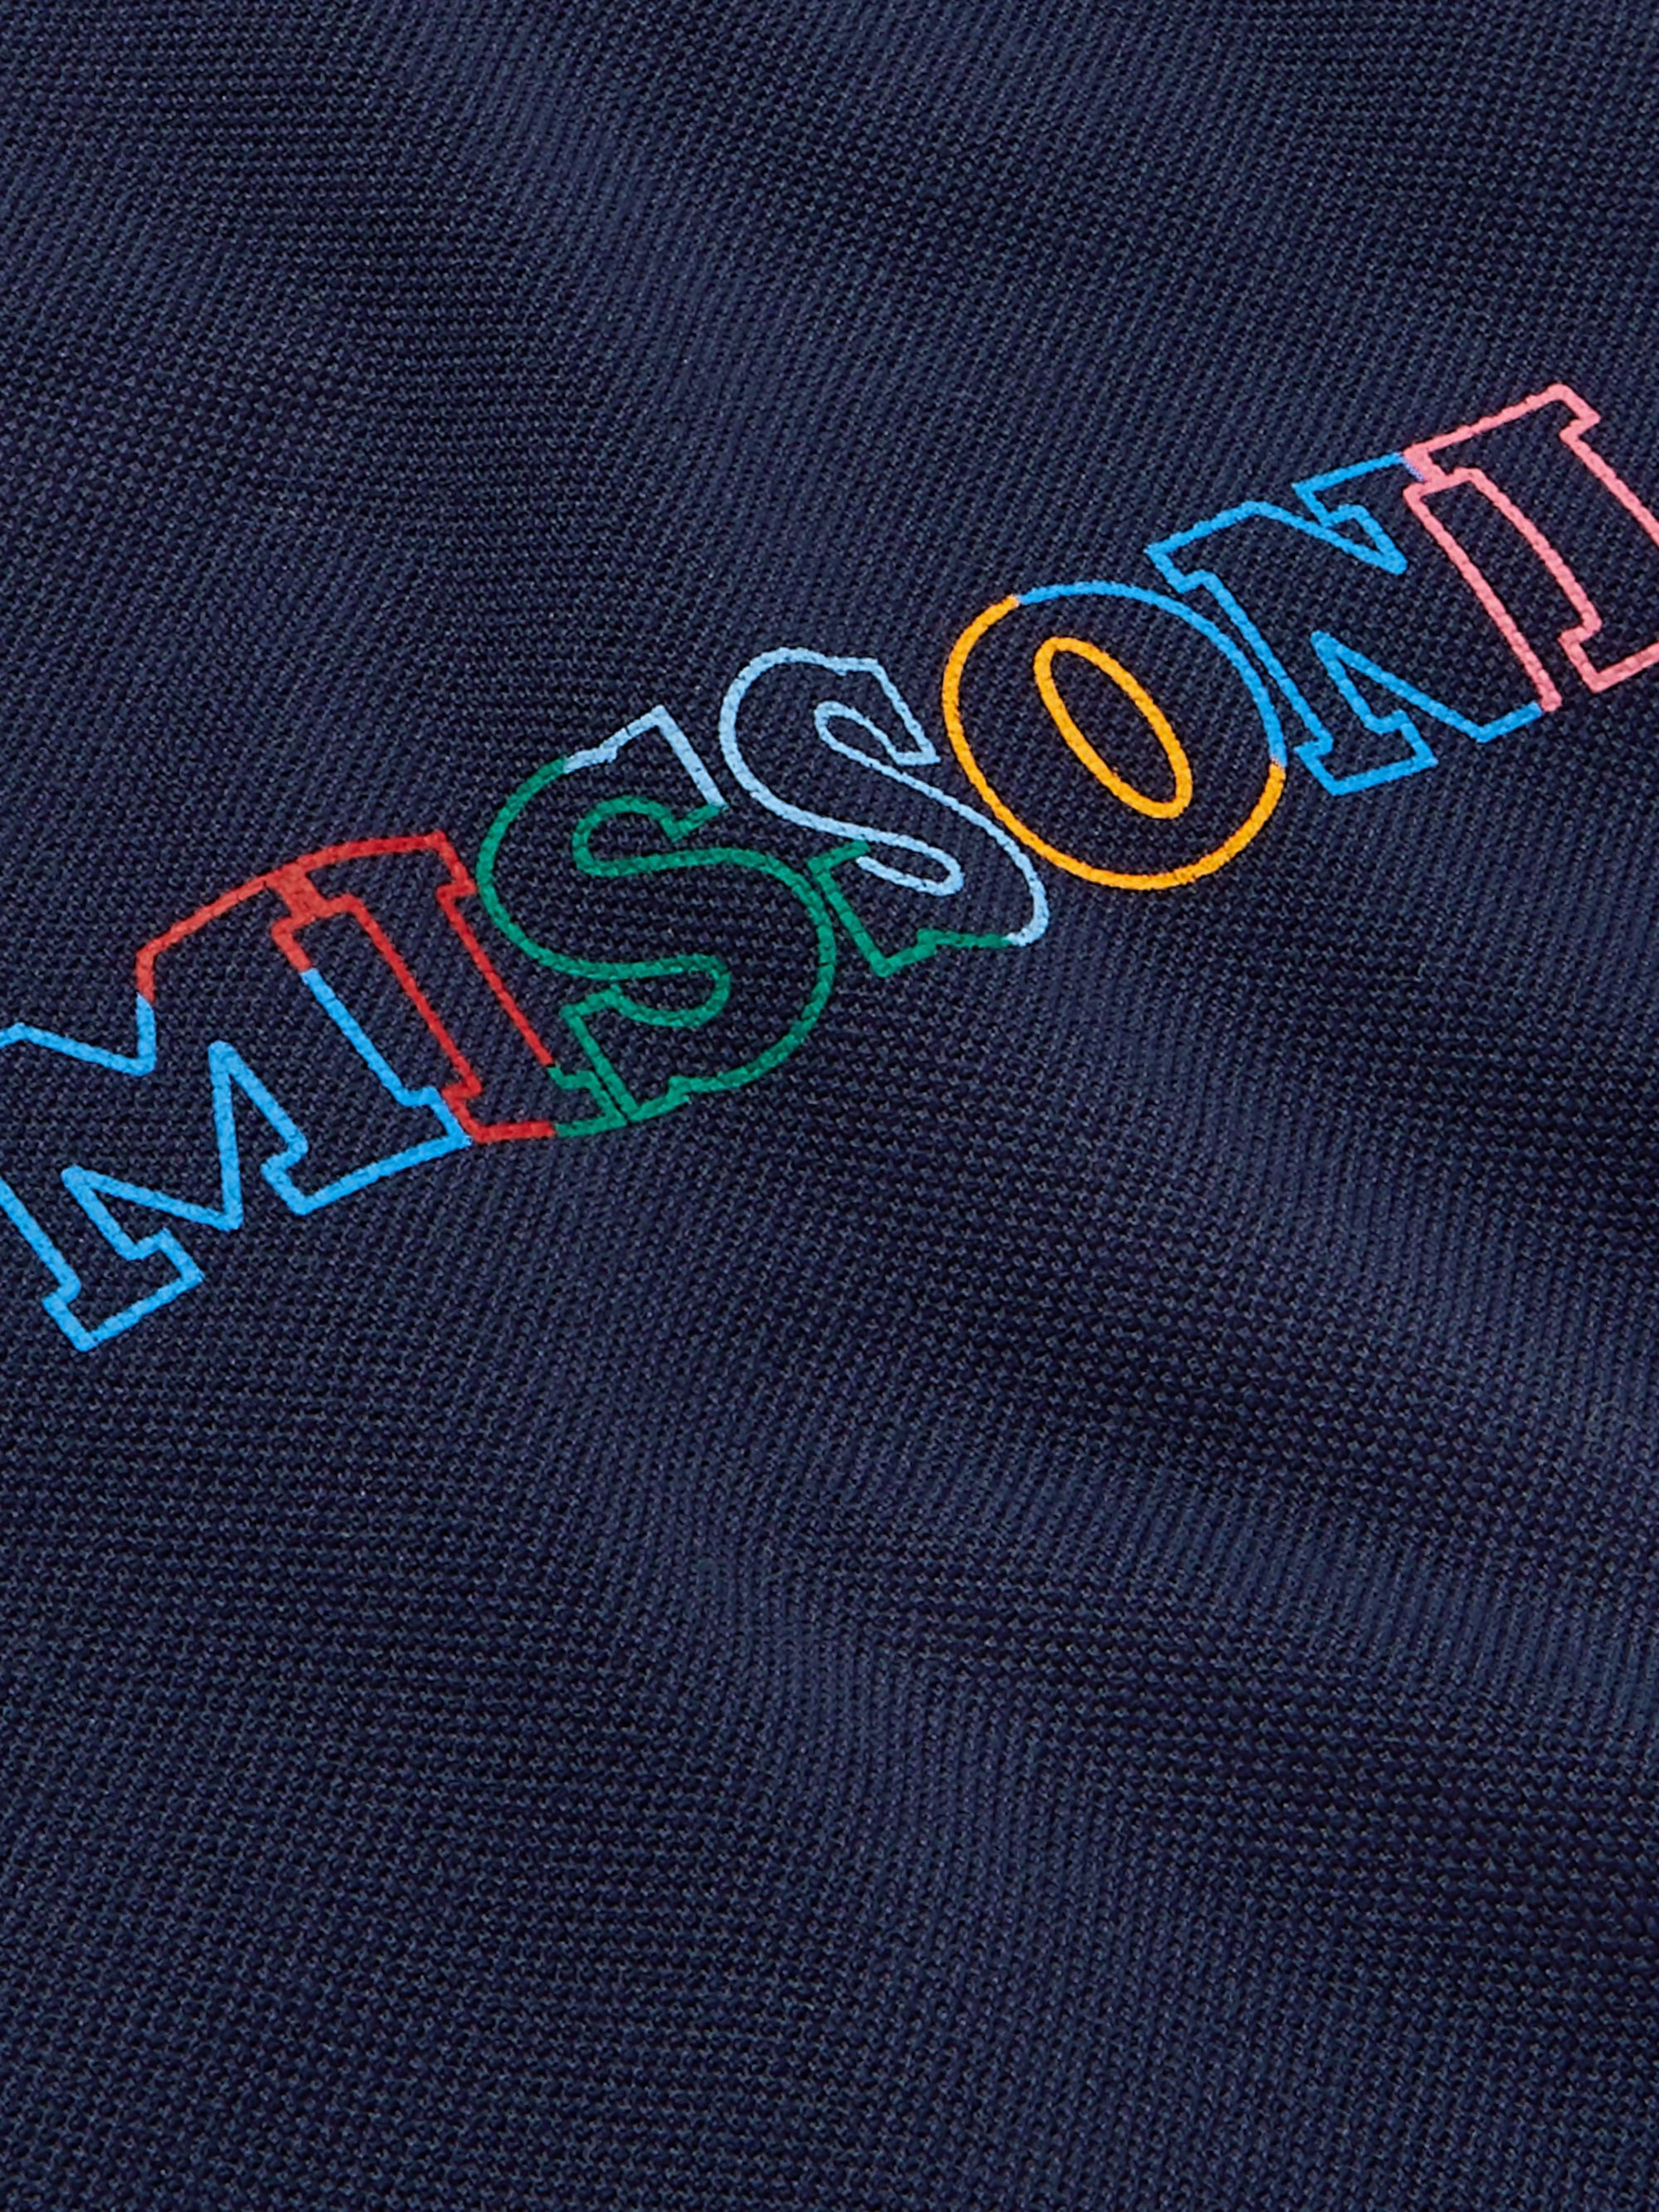 Missoni Logo-Embroidered Space-Dyed Cotton-Piqué Polo Shirt